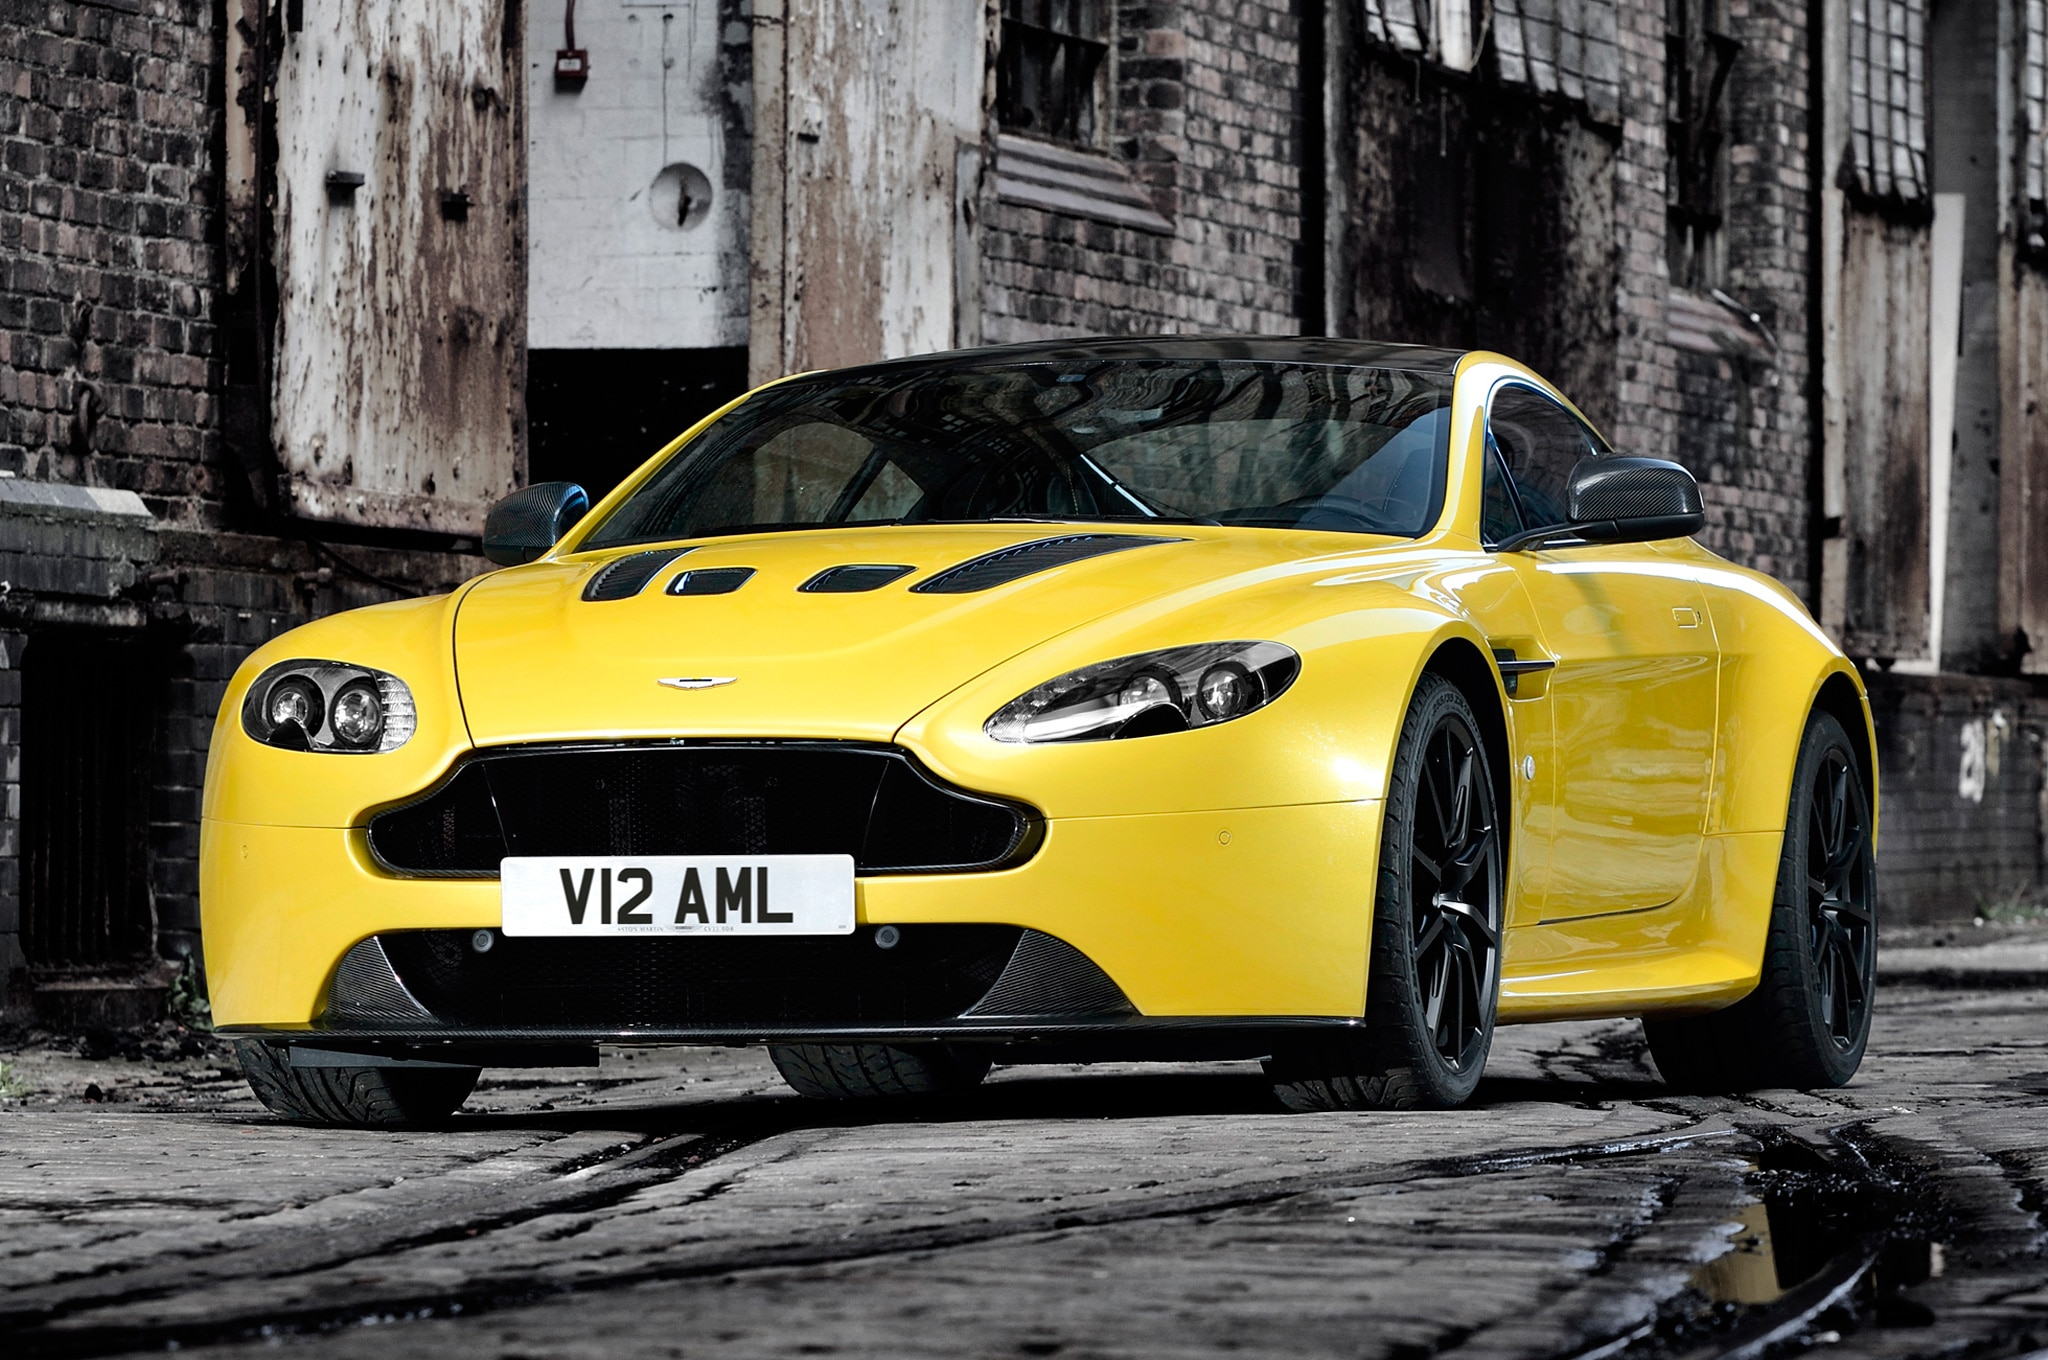 2015 Aston Martin V12 Vantage S Front View On Street1